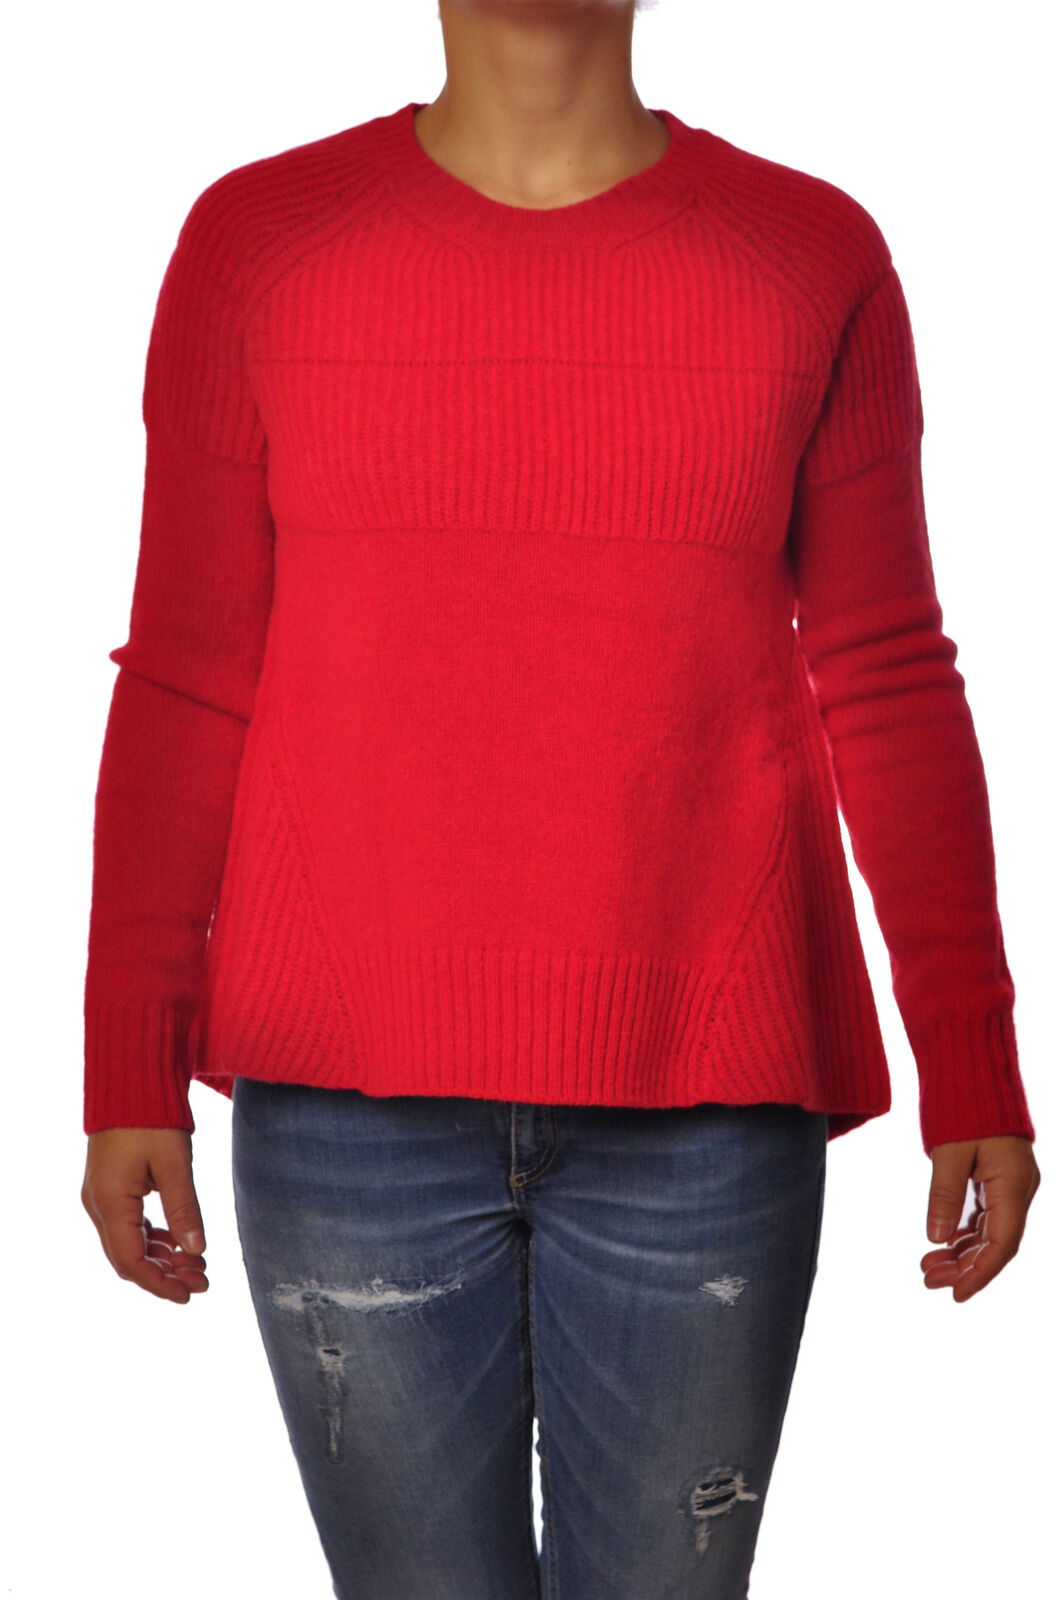 Dondup  -  Sweaters - Female - rojo  - 2662128N174009  Felices compras